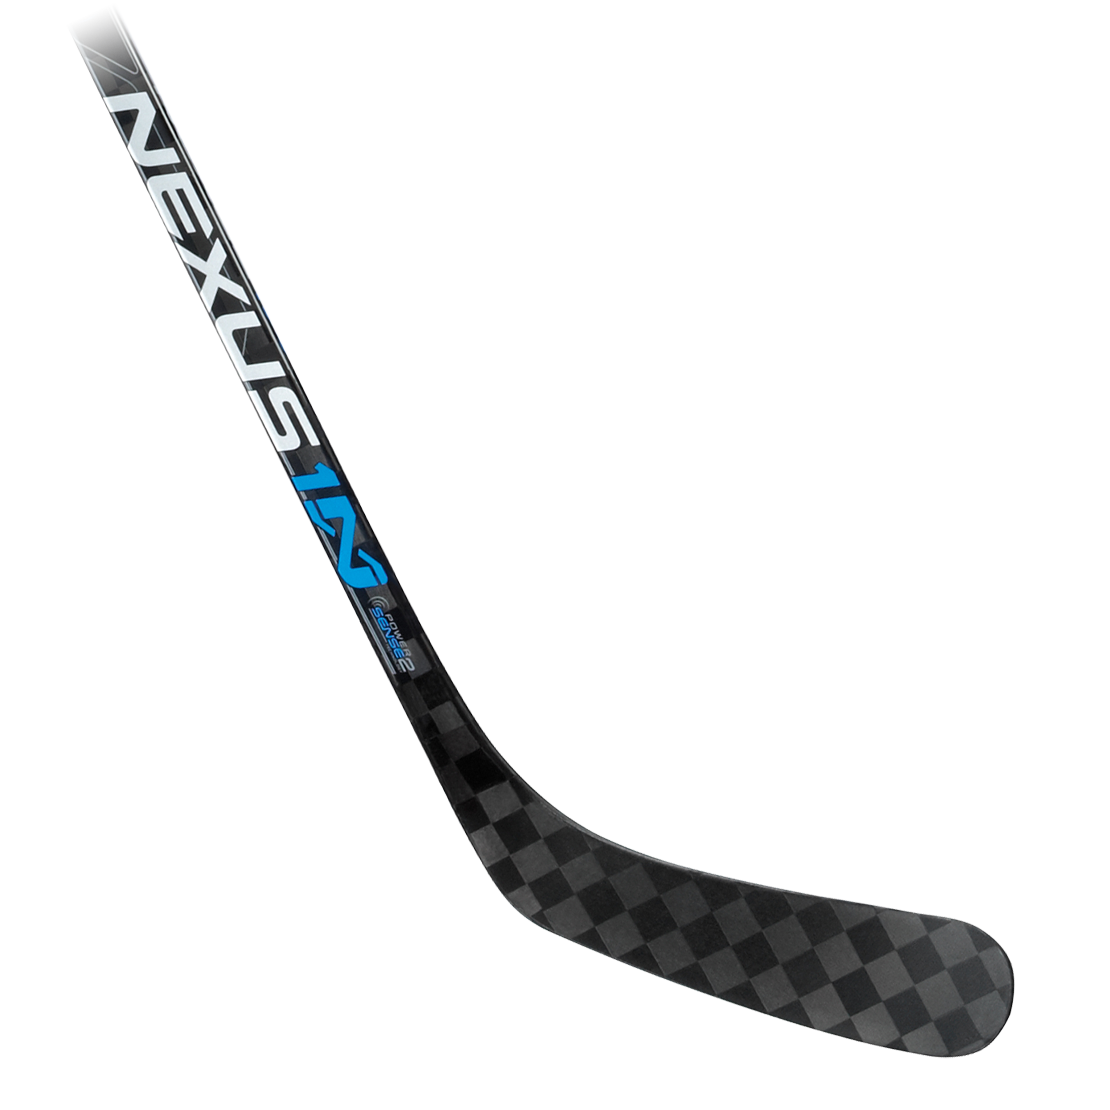 Hockey Stick Png Image Hockey Stick Hockey Stick